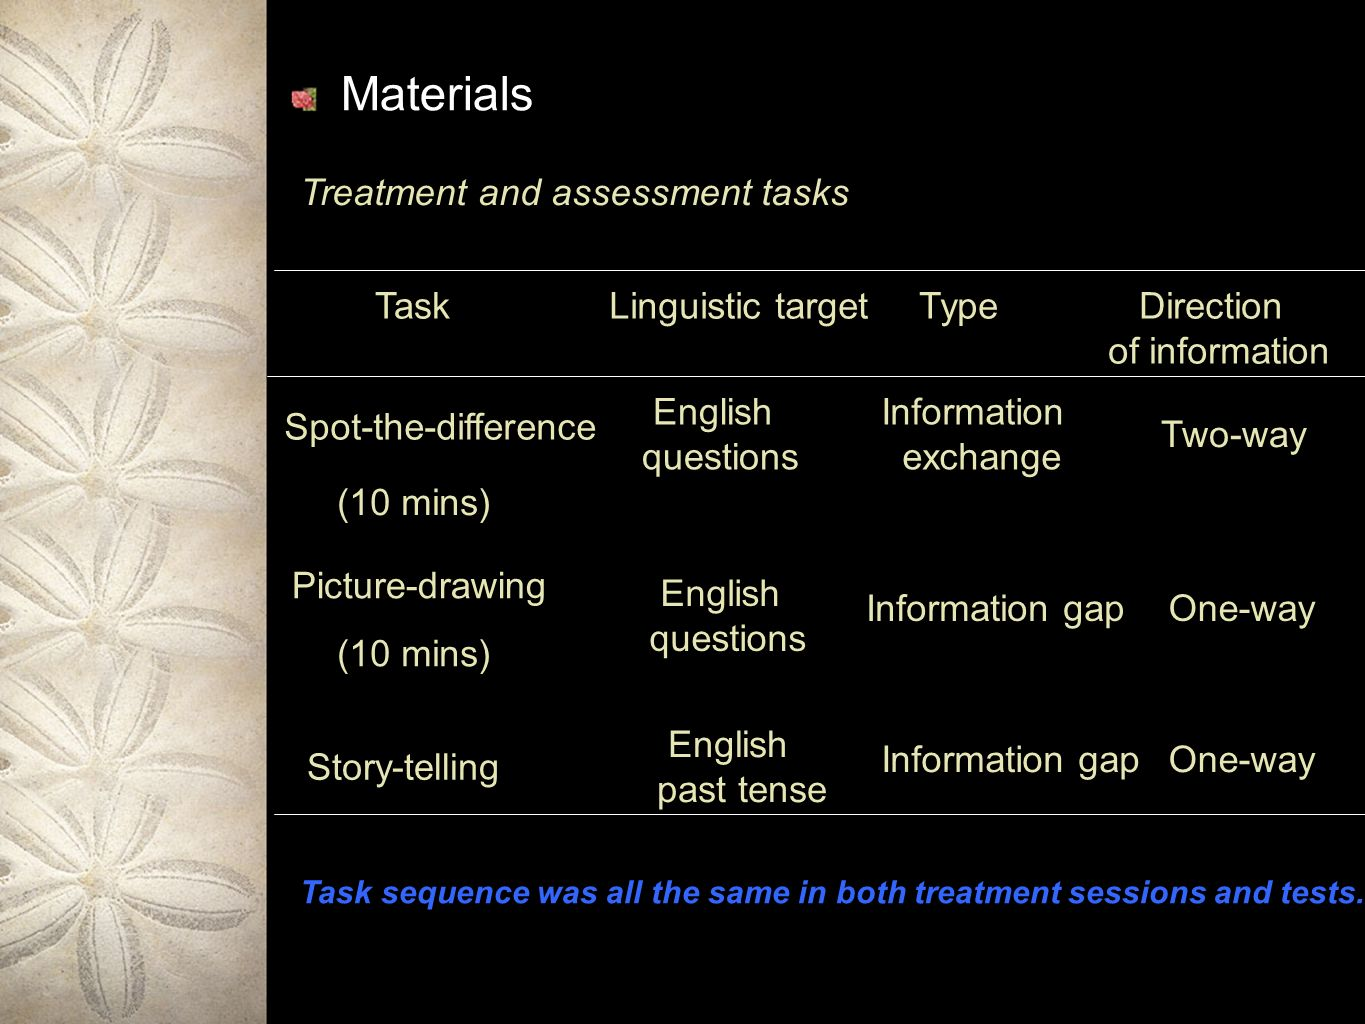 Treatment and assessment tasks